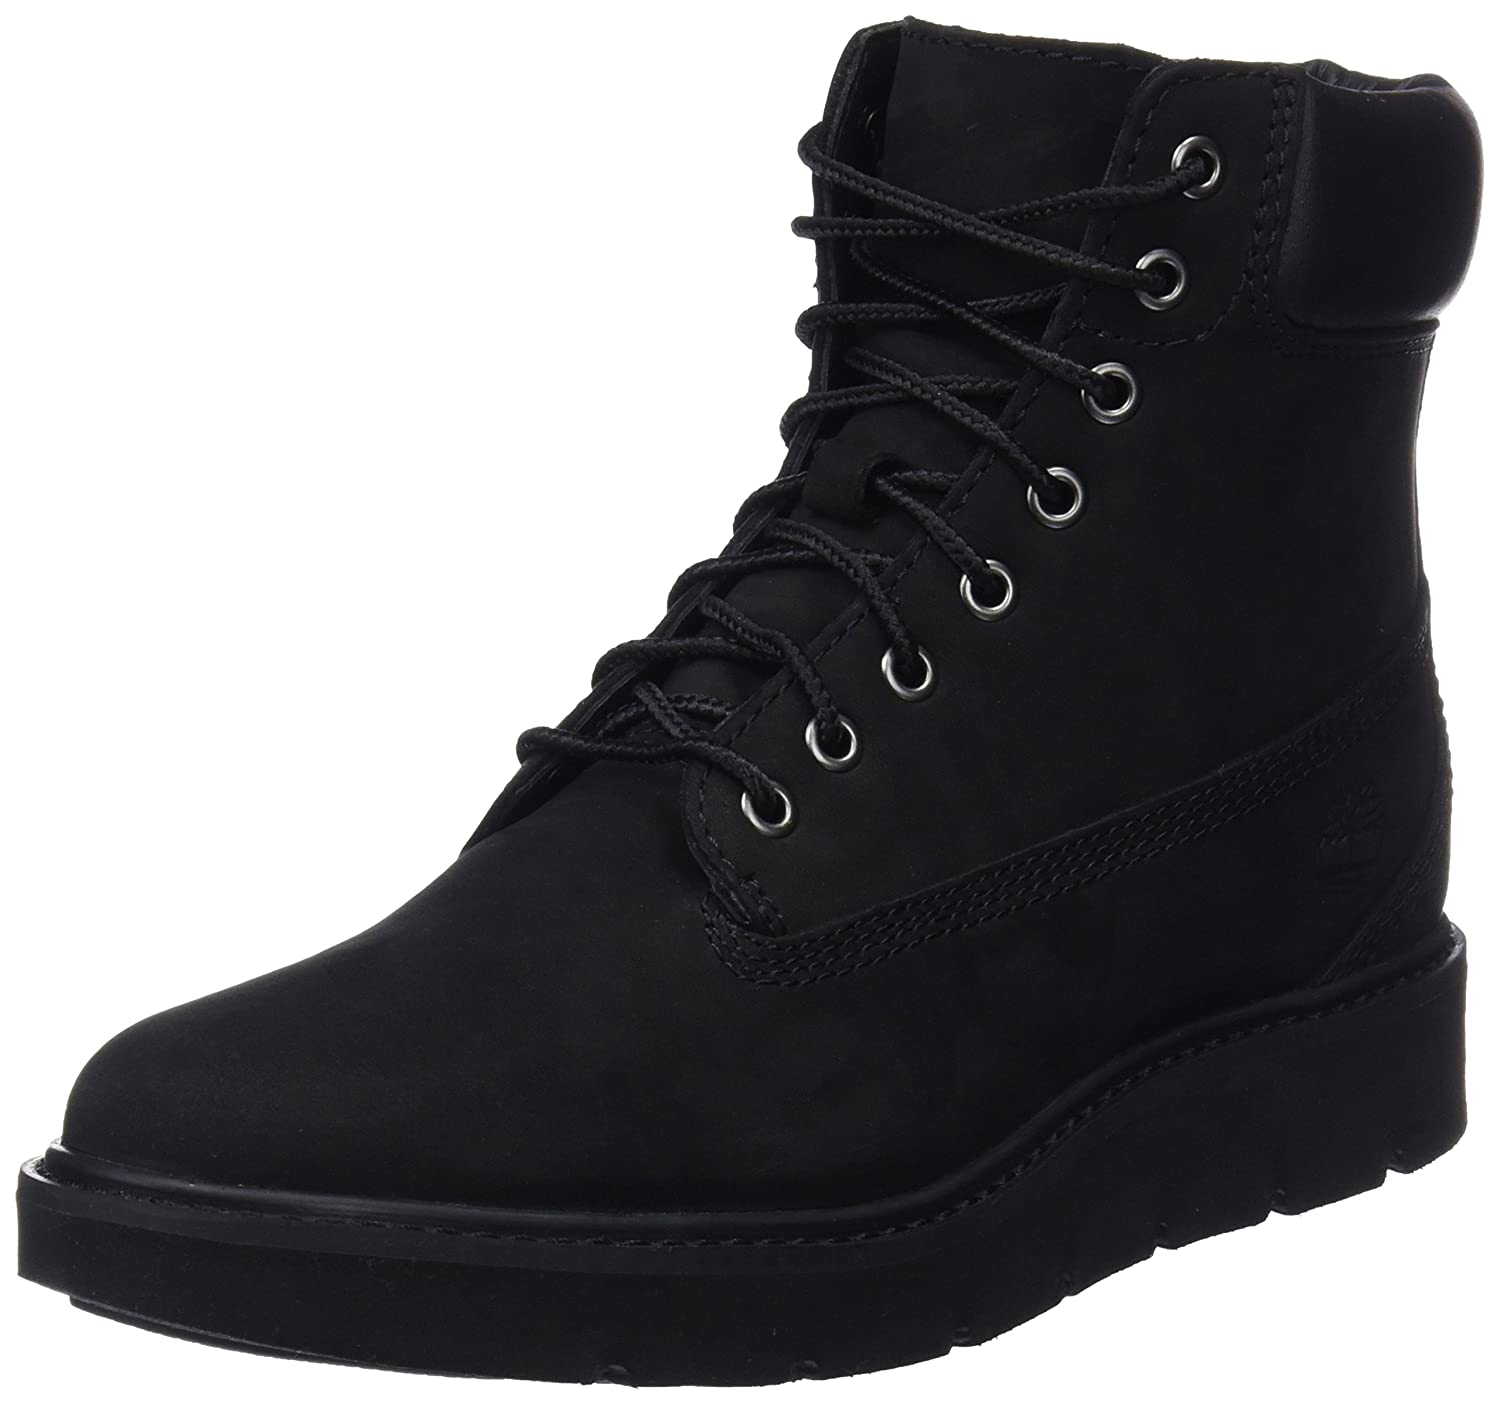 Timberland Kenniston 6 inch, Botines Timberland Femme, Yellow, Botines Noir 37.5 EU Noir (Black Nubuck) 80dece0 - fast-weightloss-diet.space